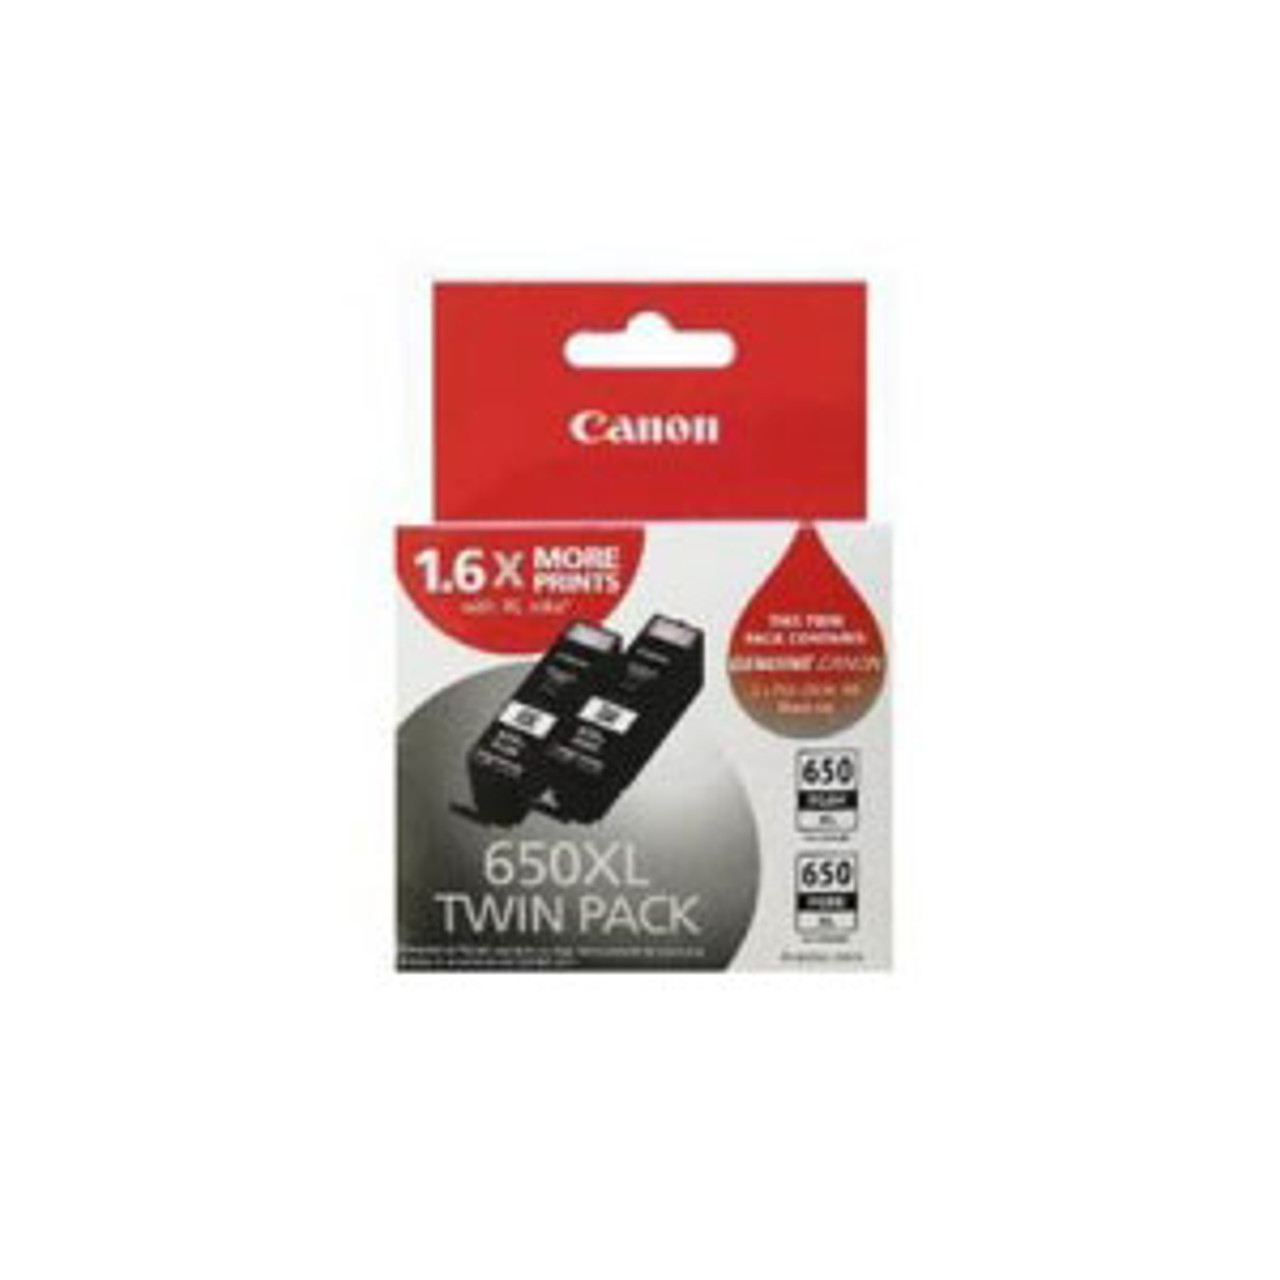 Image for Canon 650XL Twin Pack Black CX Computer Superstore